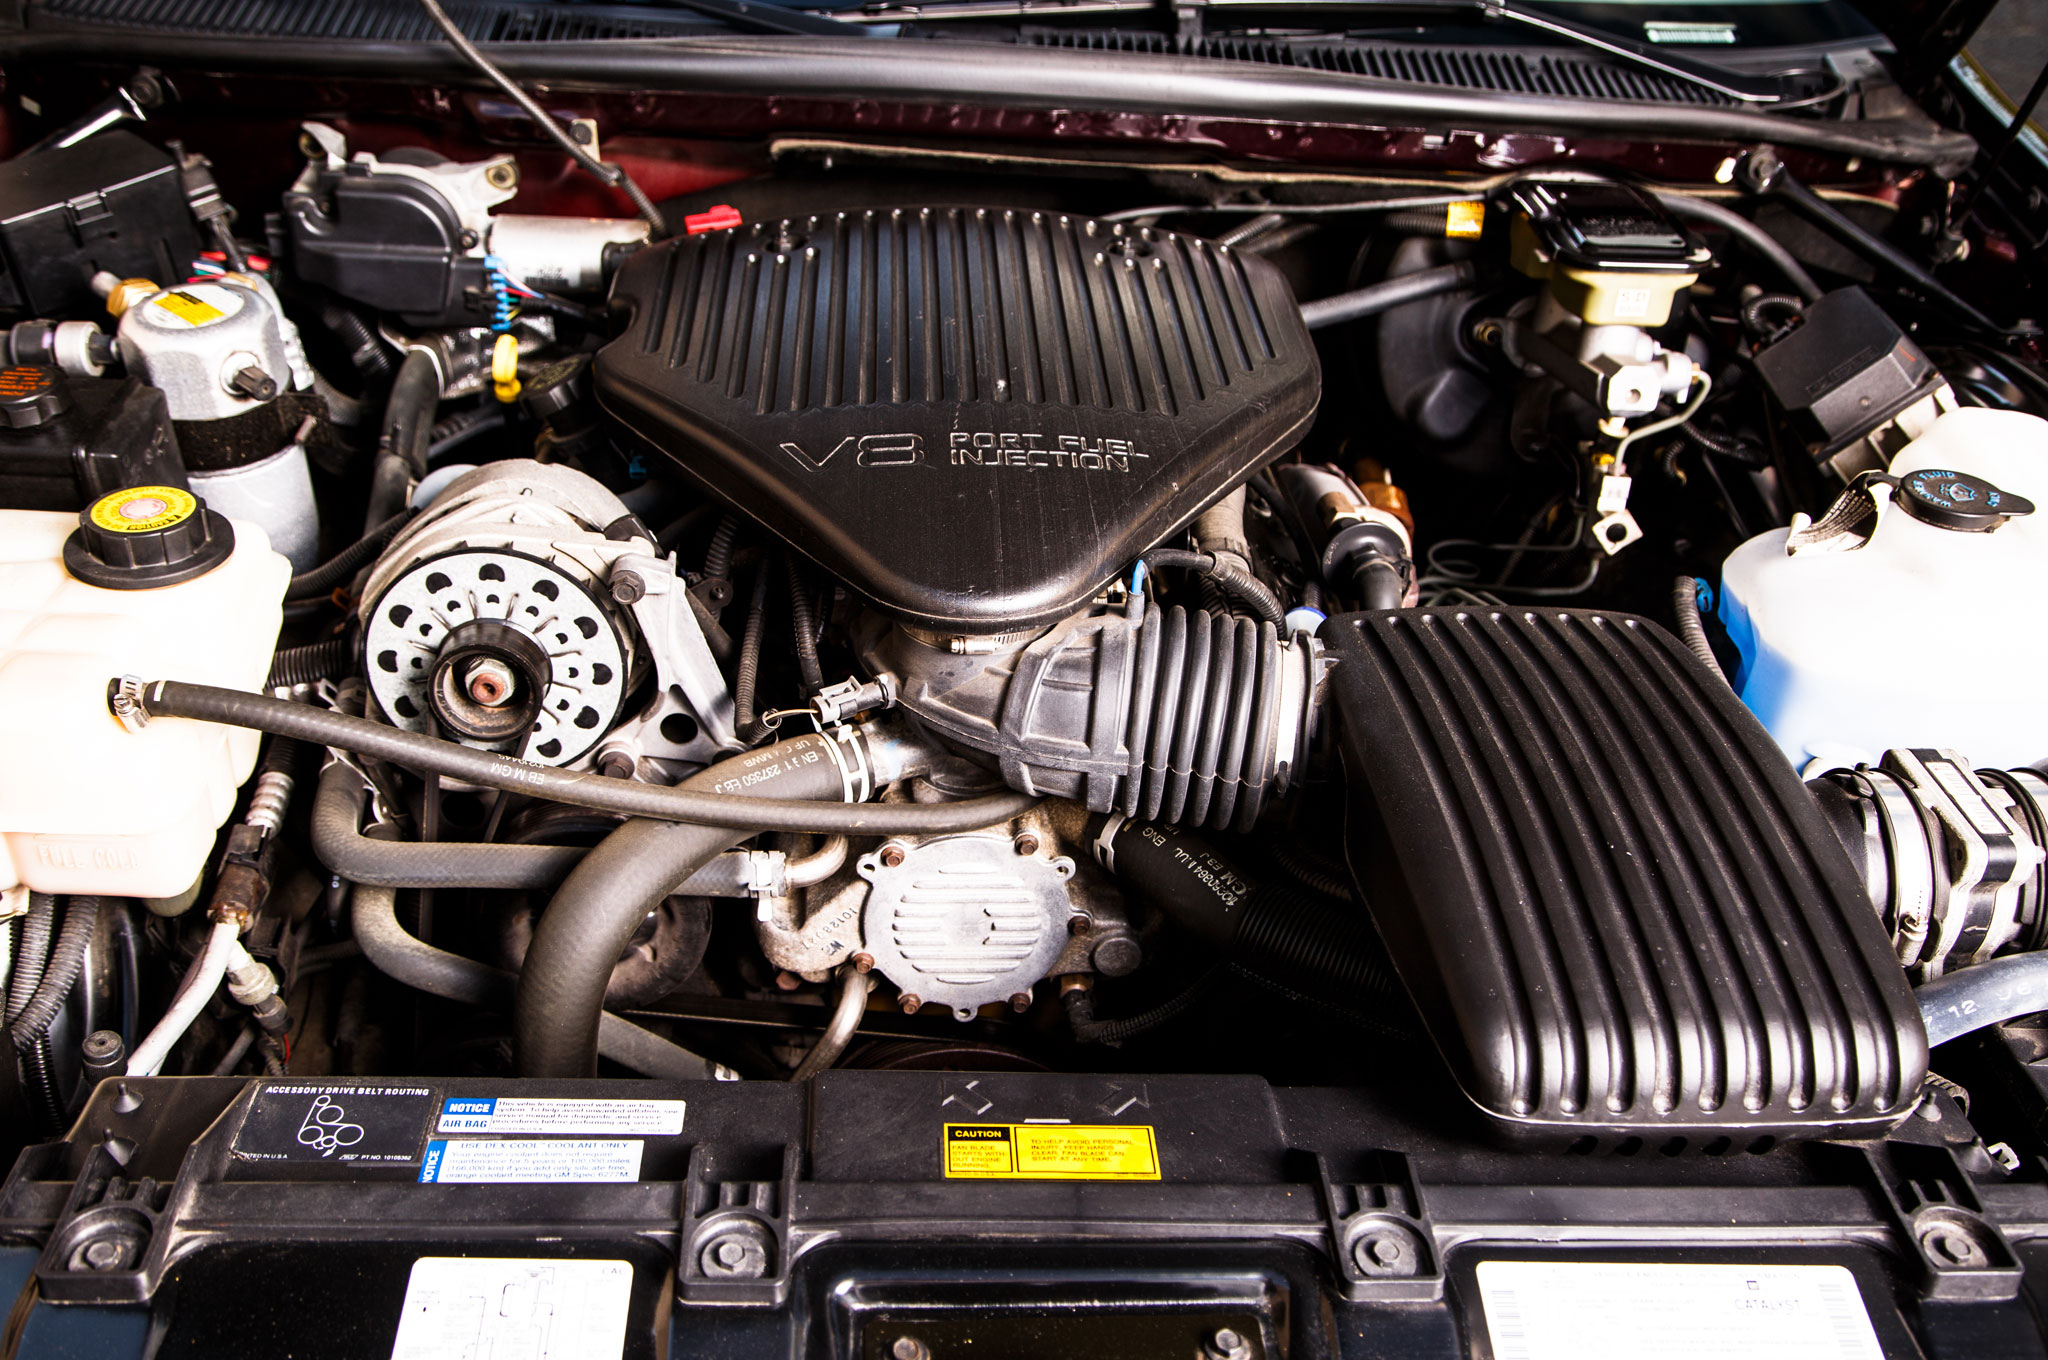 nissan e24 wiring diagram html with 94 Caprice Engine Diagram on 94 Caprice Engine Diagram together with Bmw E28 Wiring Harness furthermore Vacuum Hoses For Cars furthermore 2007 Nissan Sentra Parts And Accessories Automotive likewise 2002 Nissan Sentra Se R Spec V Wiring Diagram.